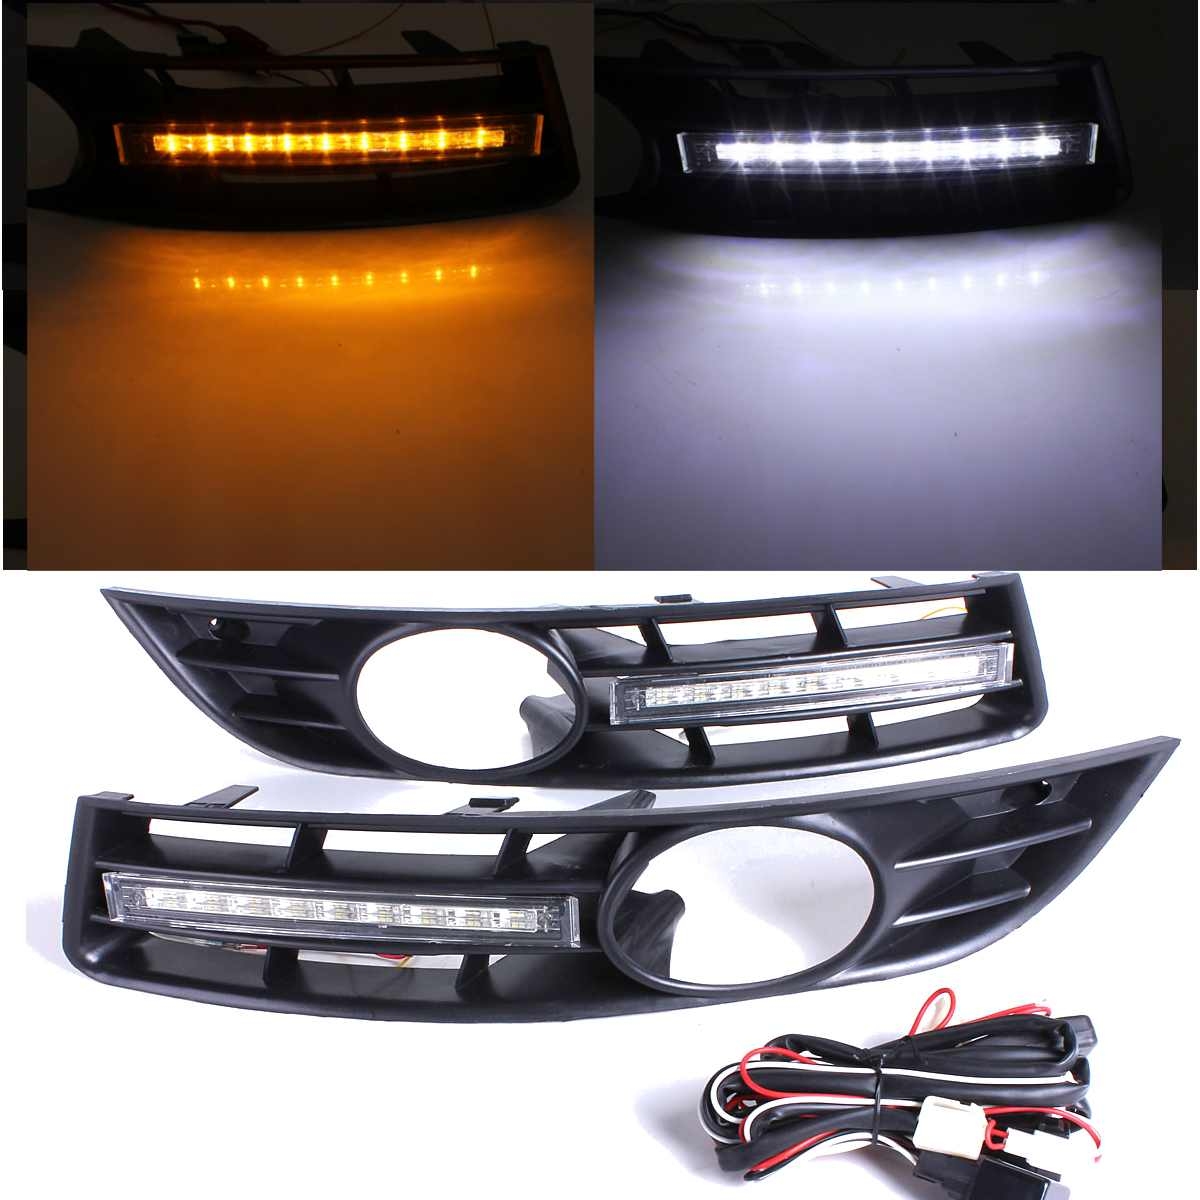 Car LED Light LED DRL Daytime Running Light with grill surround For VW Passat B6 2006